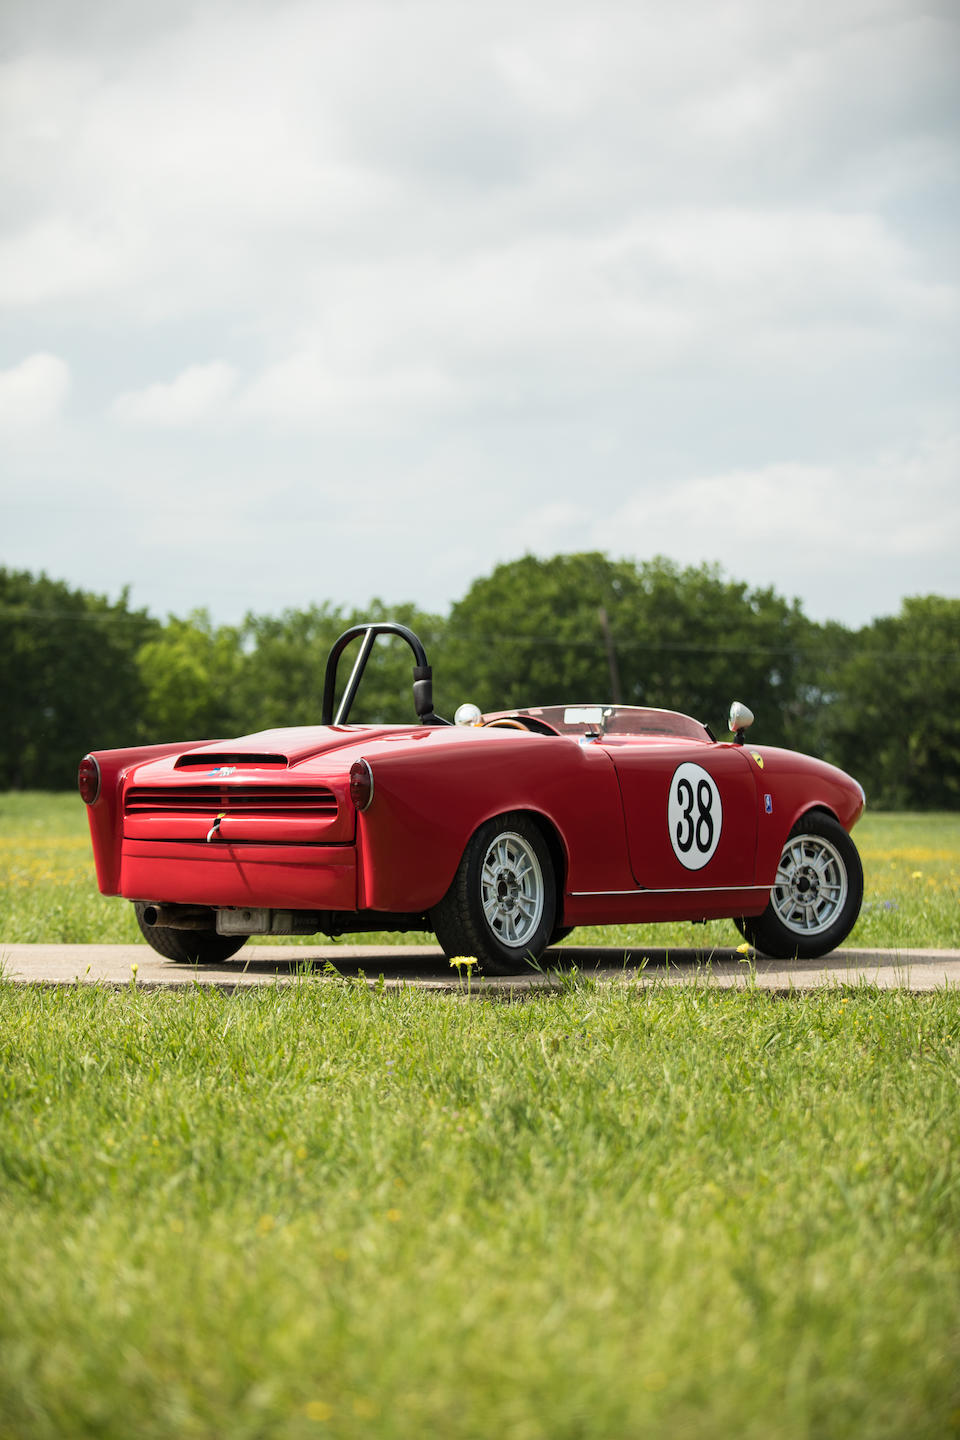 <b>1959 Abarth Allemano Spyder</b><br />Chassis no. 100-502156